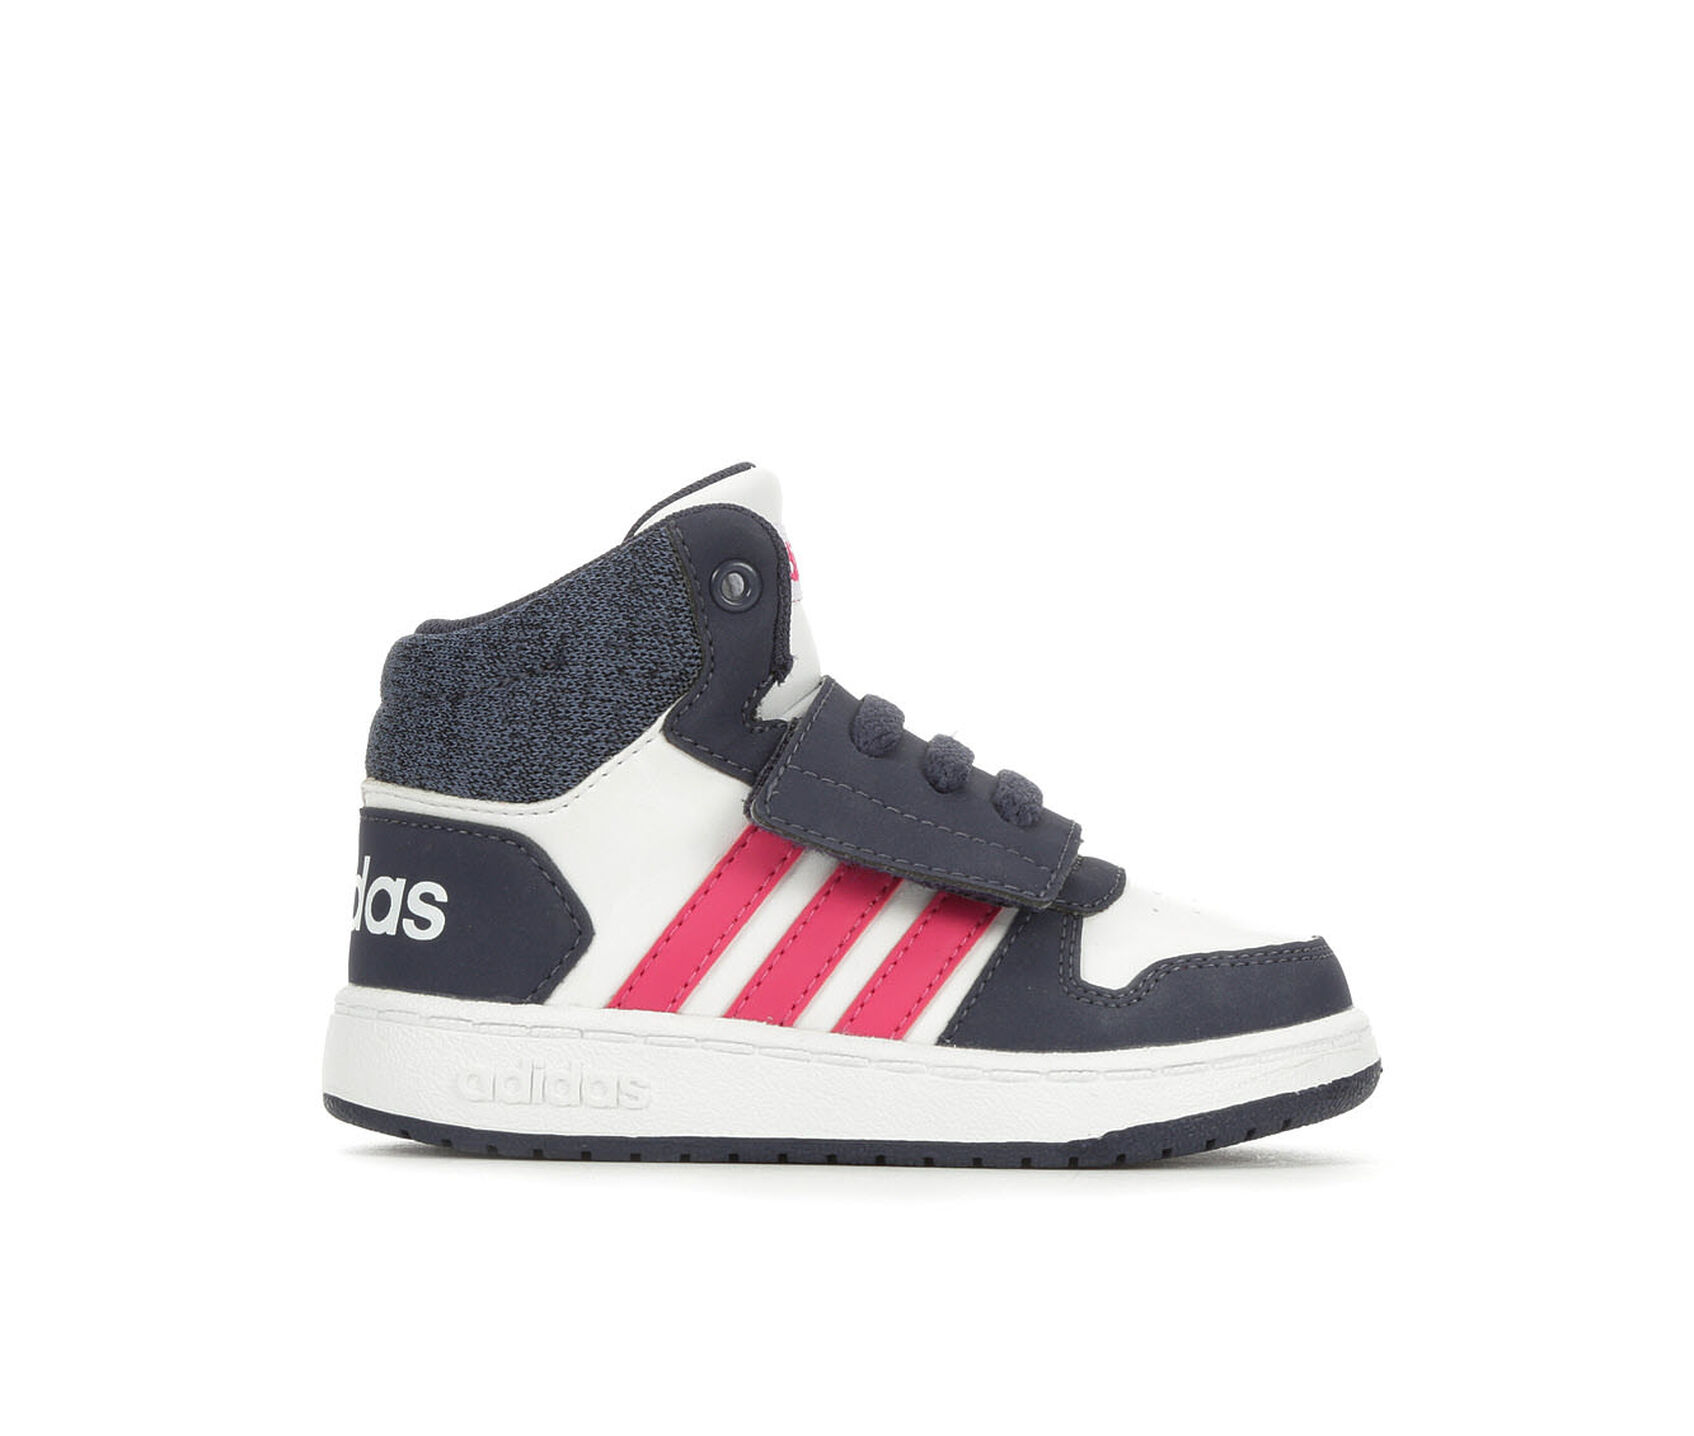 S Adidas Infant Toddler Hoops Mid Basketball Sneakers Shoe 21111a8ca